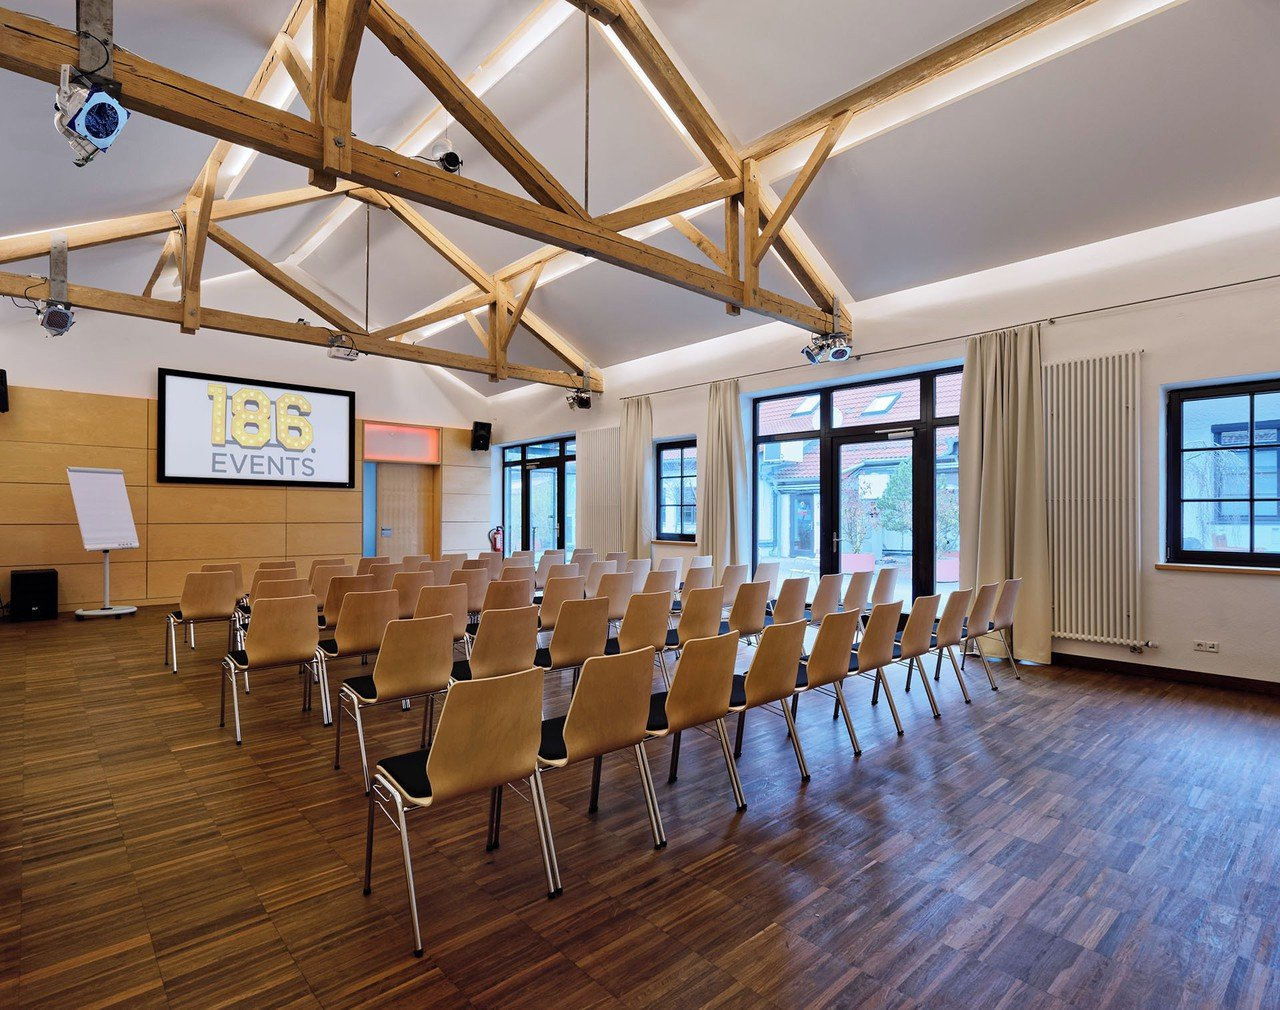 München training rooms Meetingraum 186.events image 0